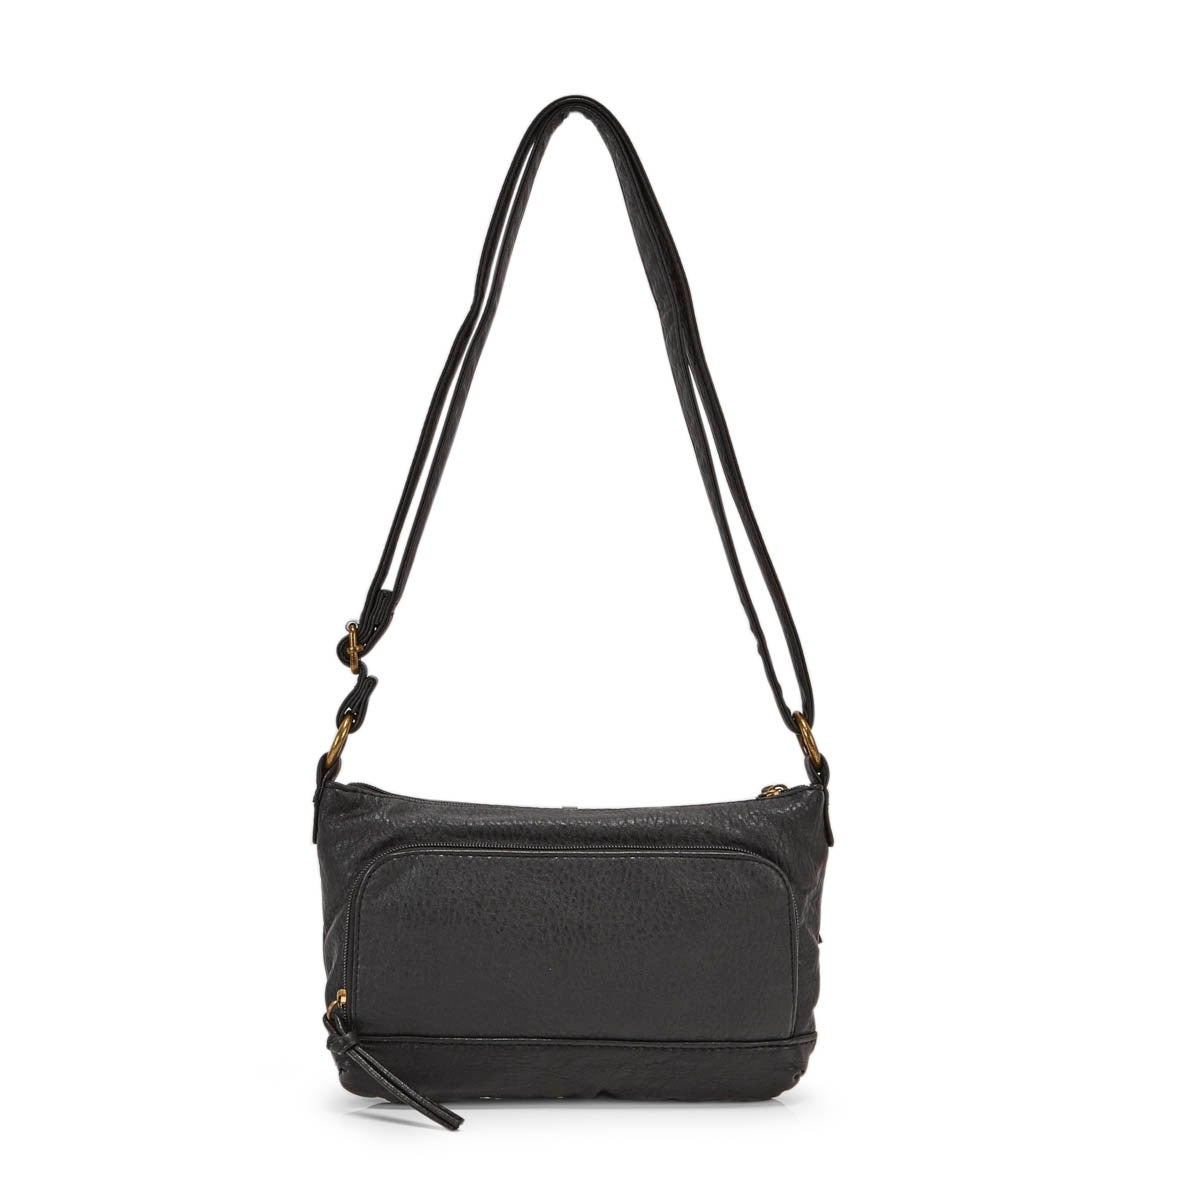 Lds black double zip crossbody bag